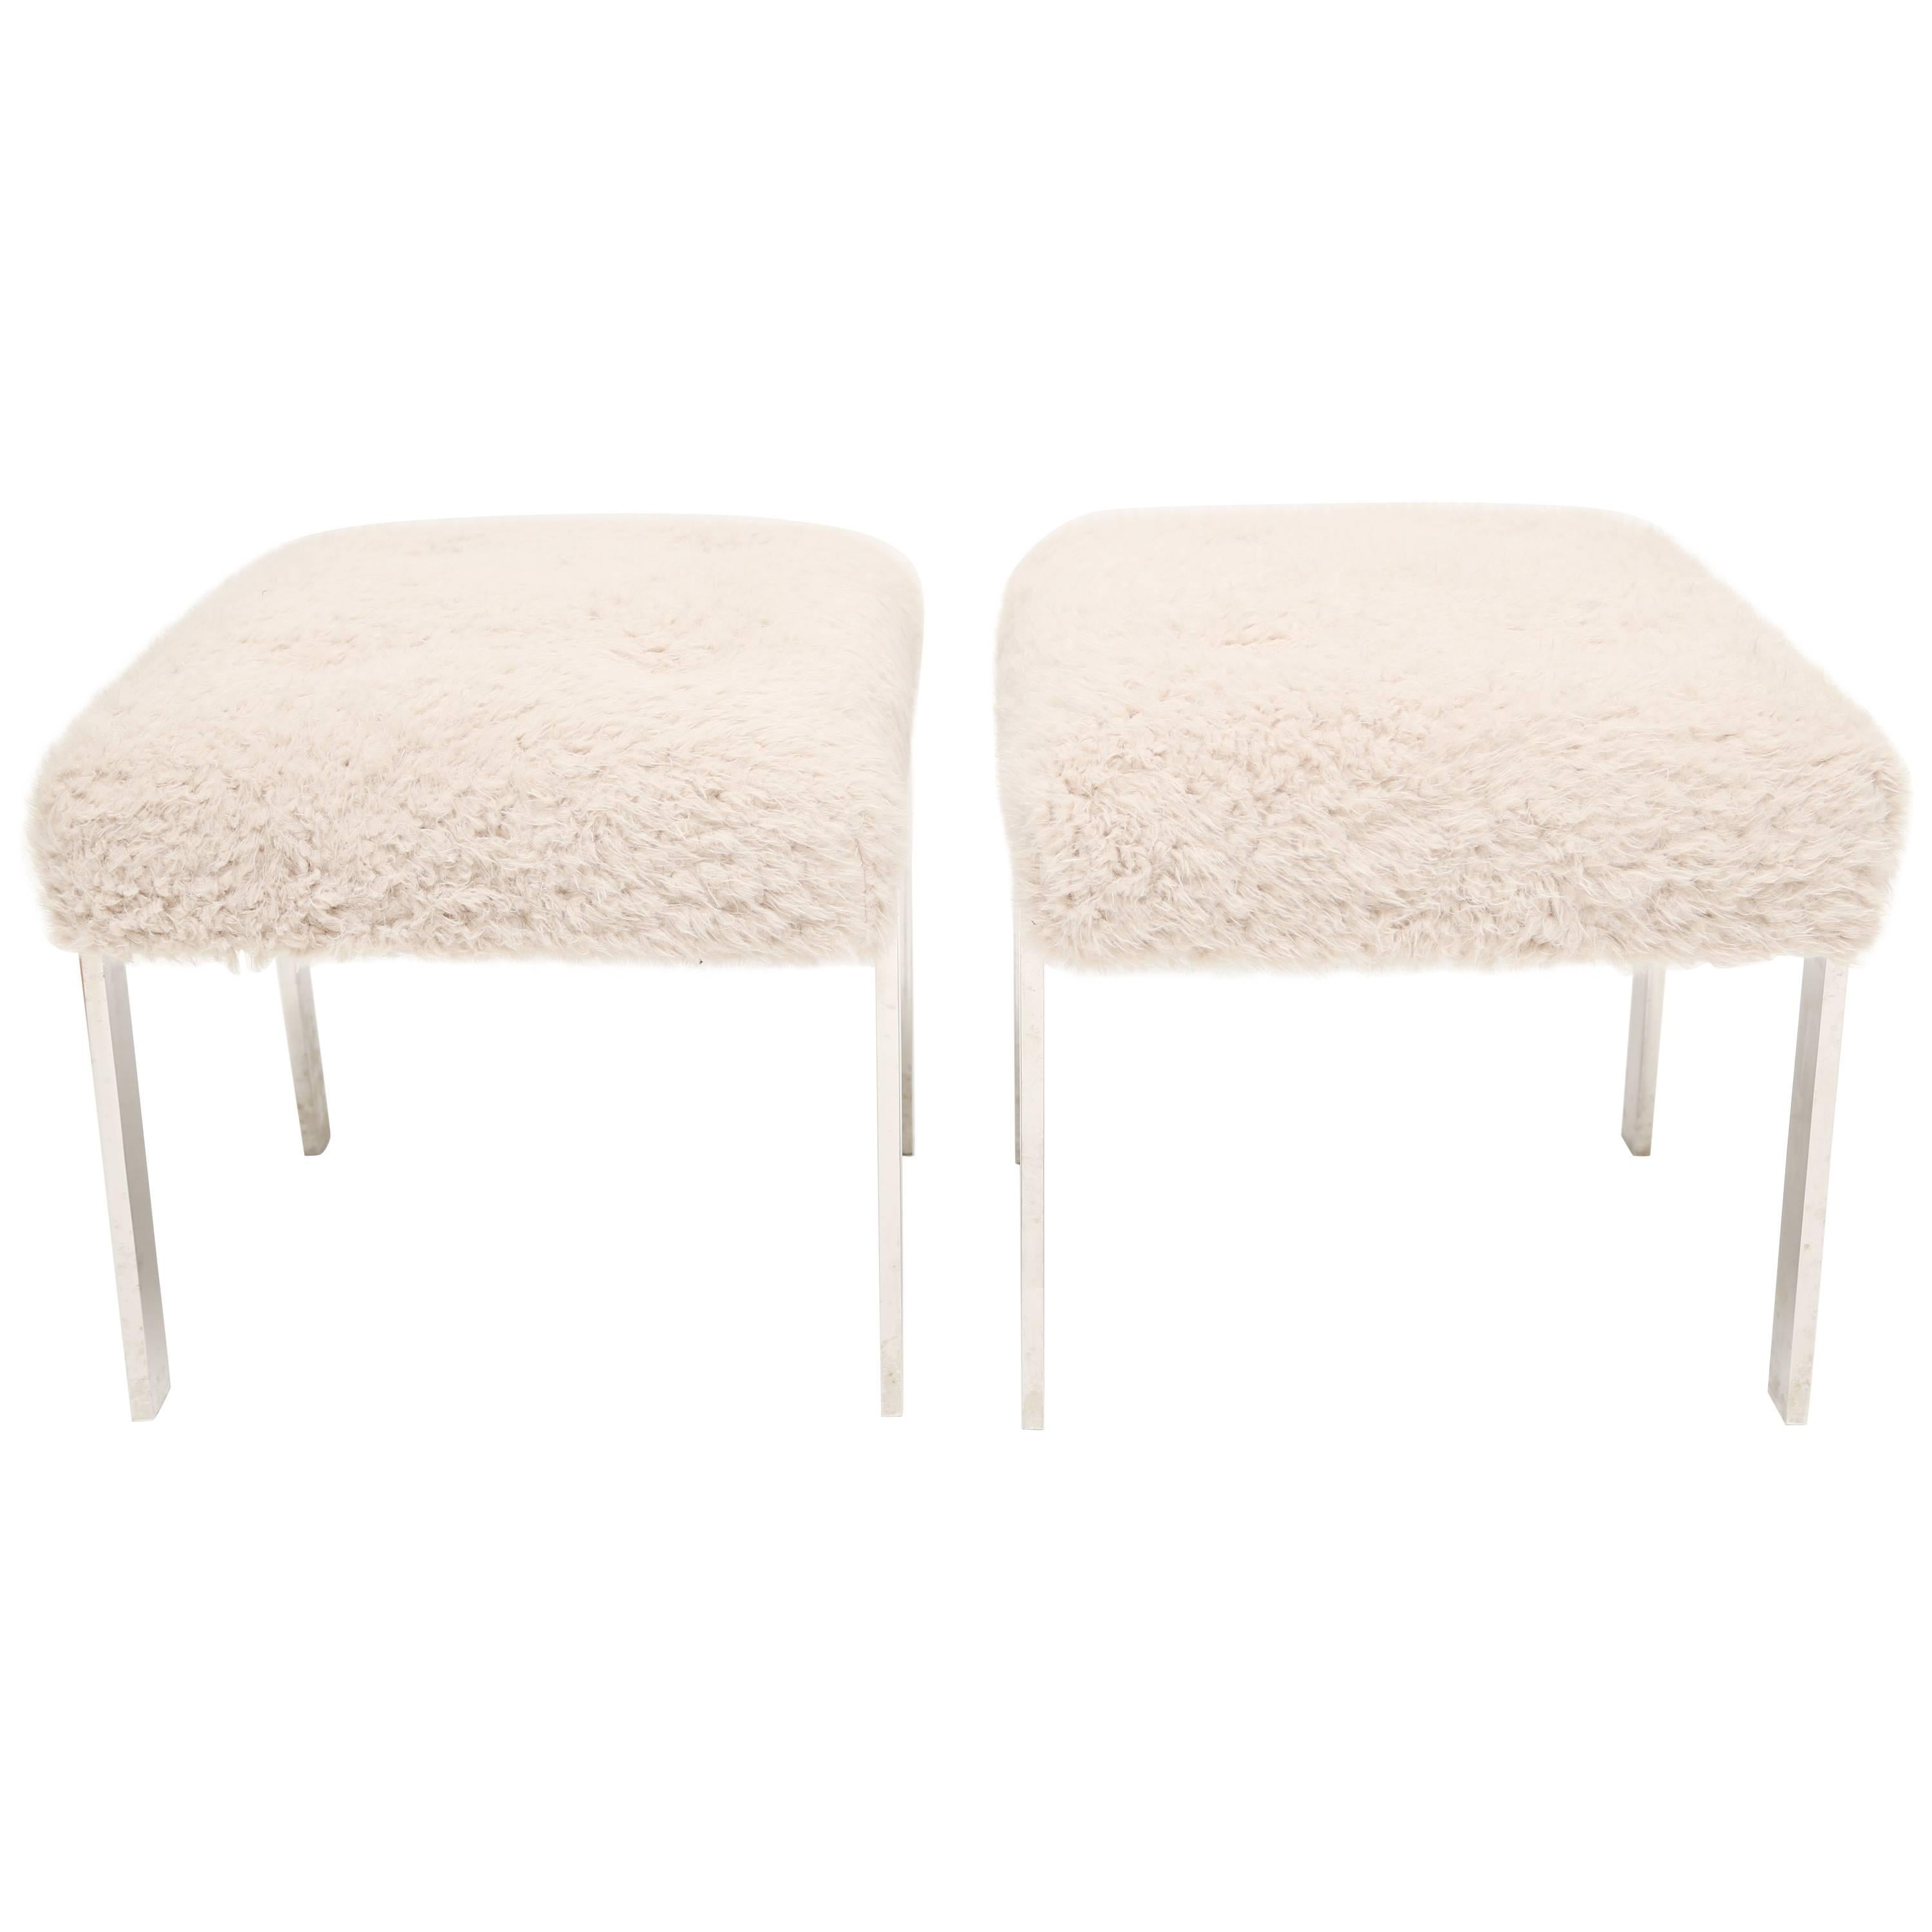 Harvey Probber Stools For Sale Awesome Ideas